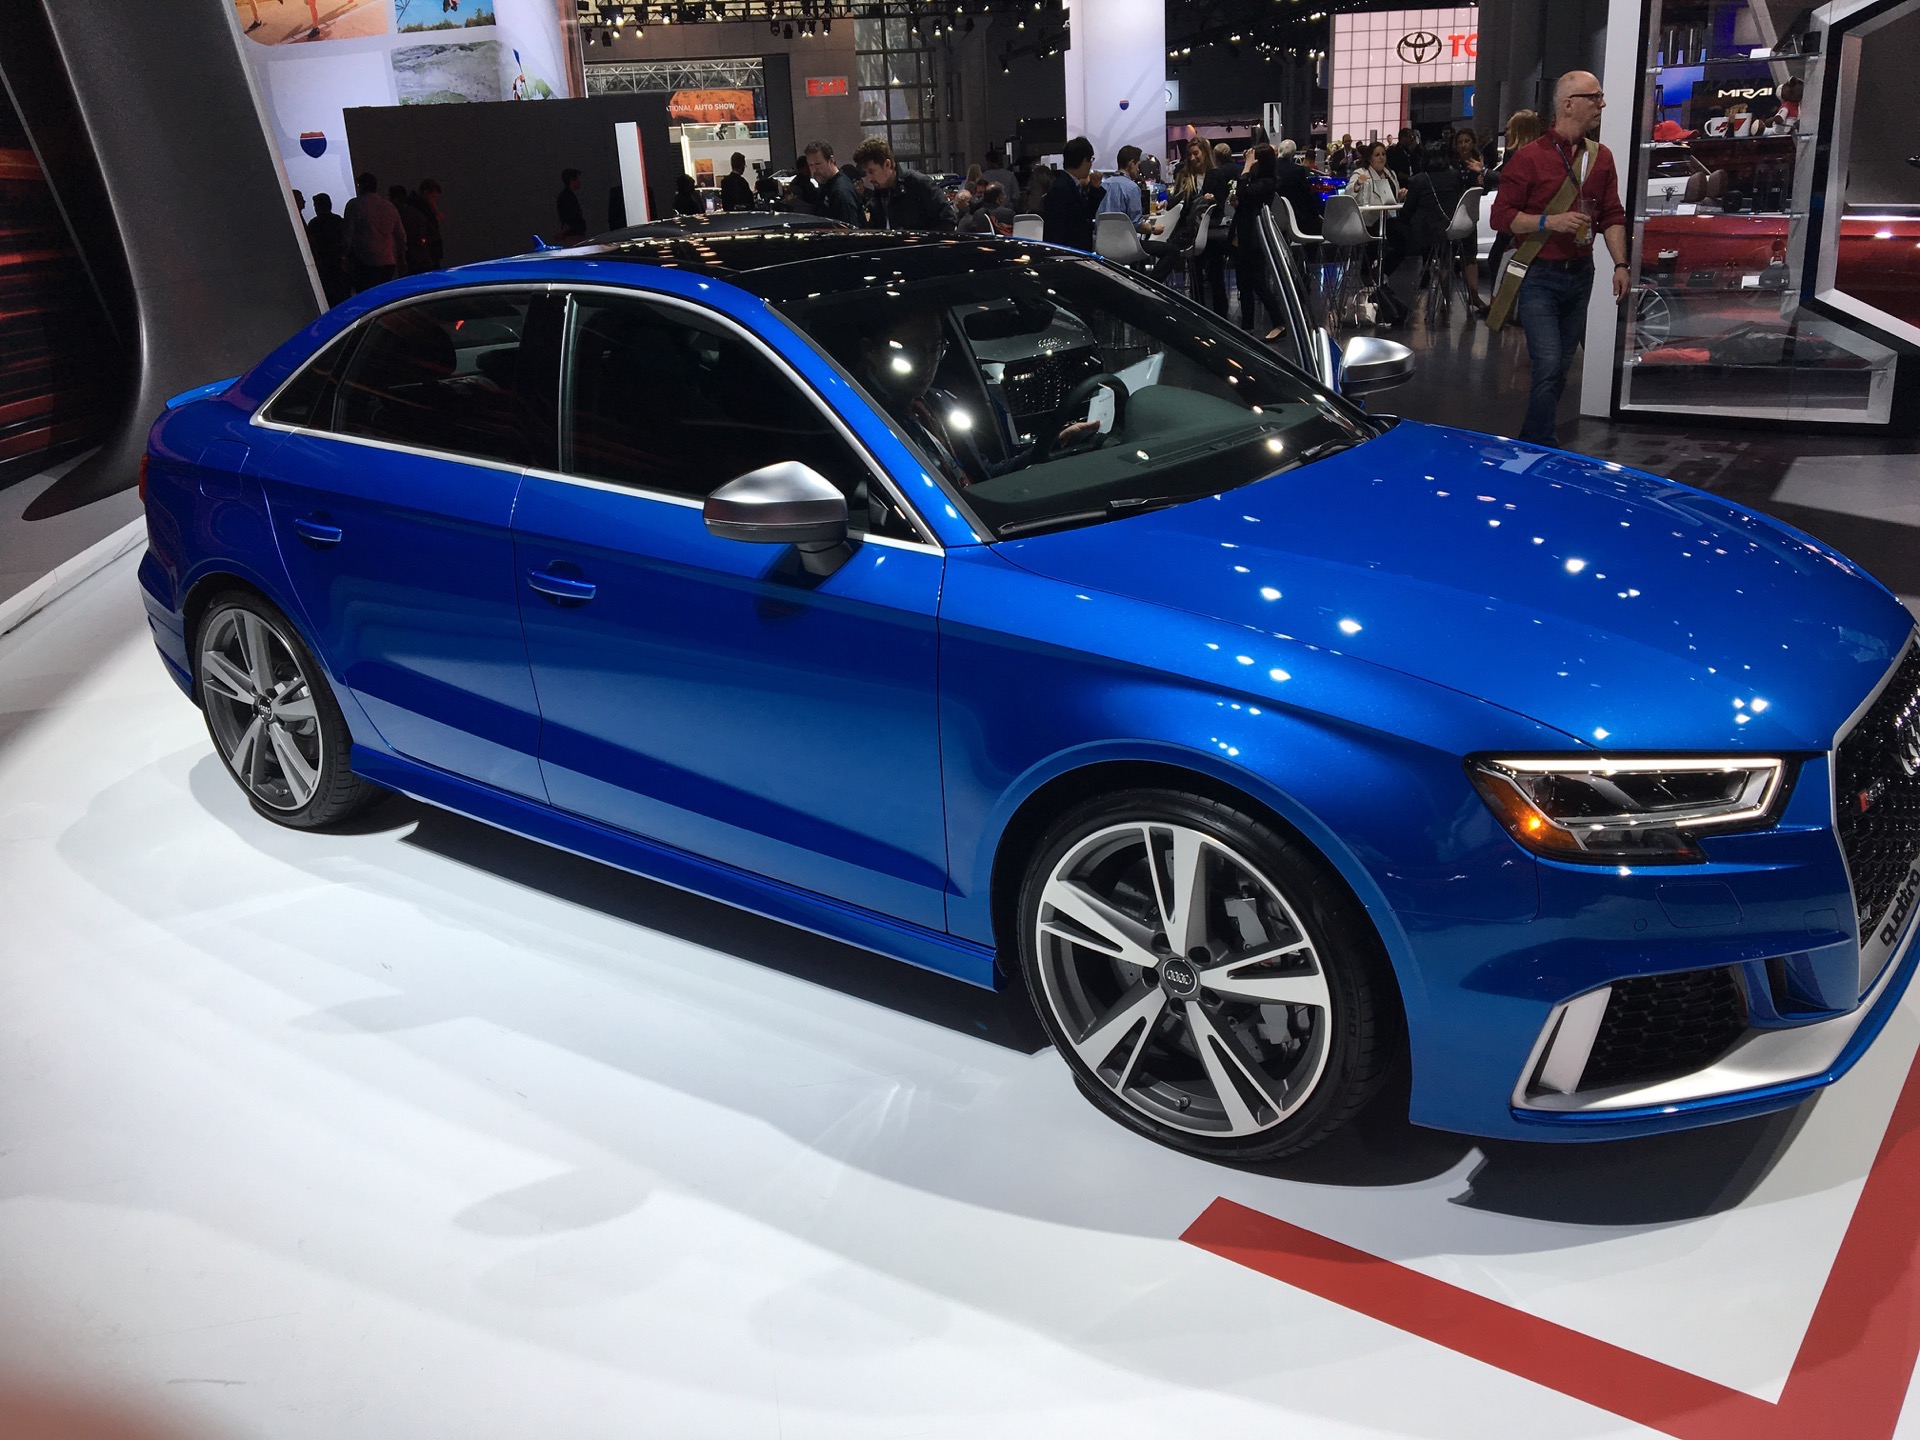 2017 NYIAS: Audi RS3 Sedan to take on BMW M2